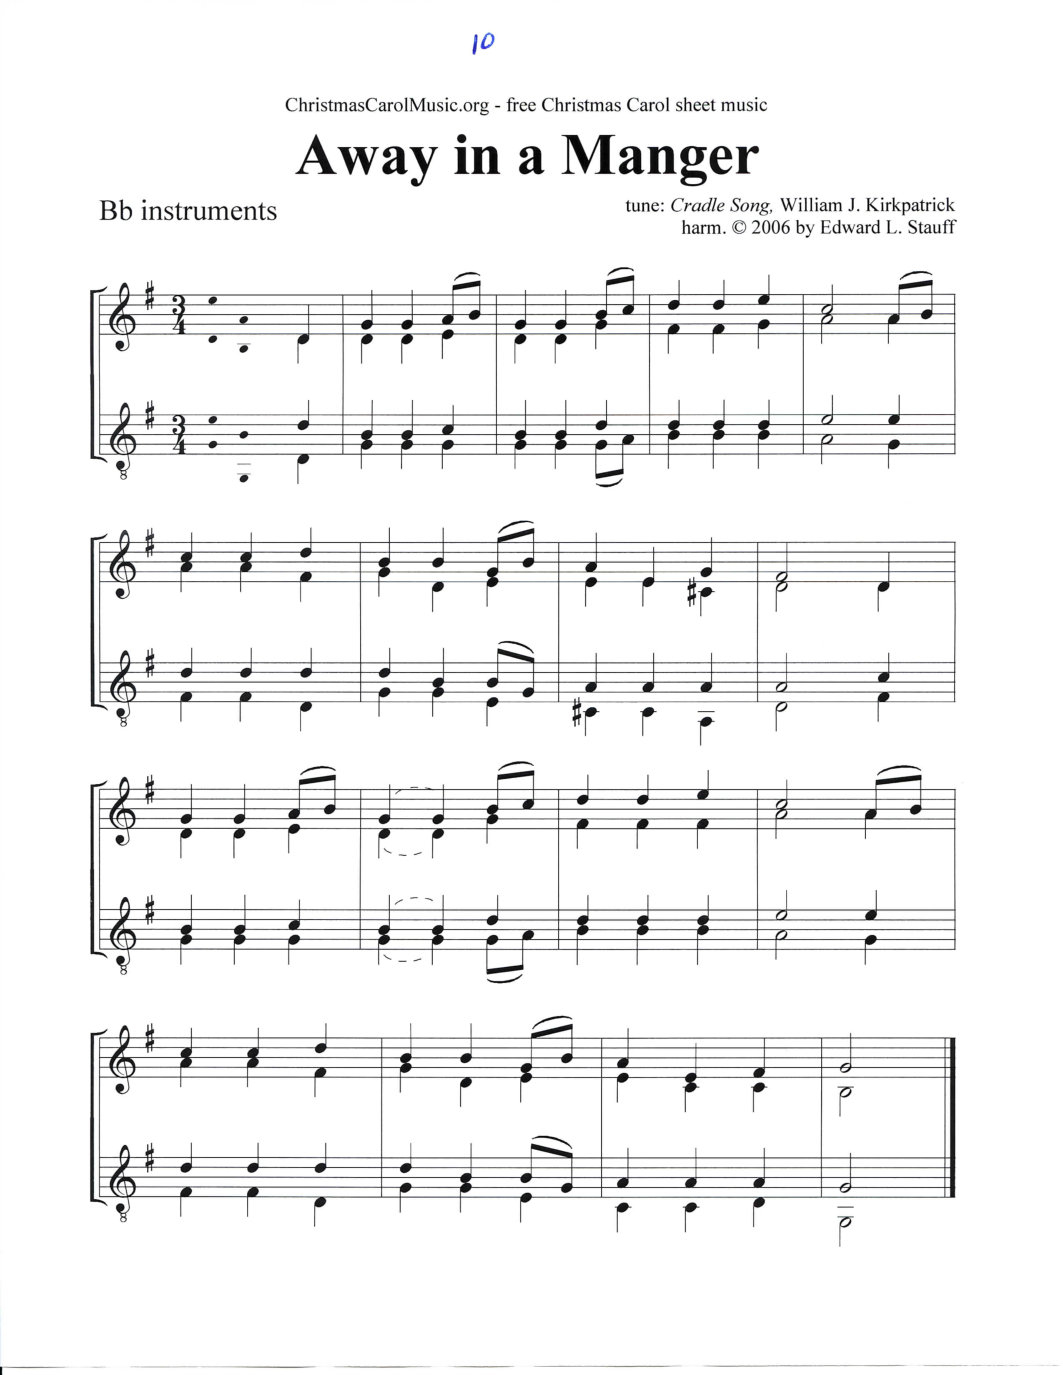 A Christmas Eve Songbook Sheet Music Free Printable For 45 Beloved Christmas Classics Christmas Sheet Music Sheet Music Eve Music